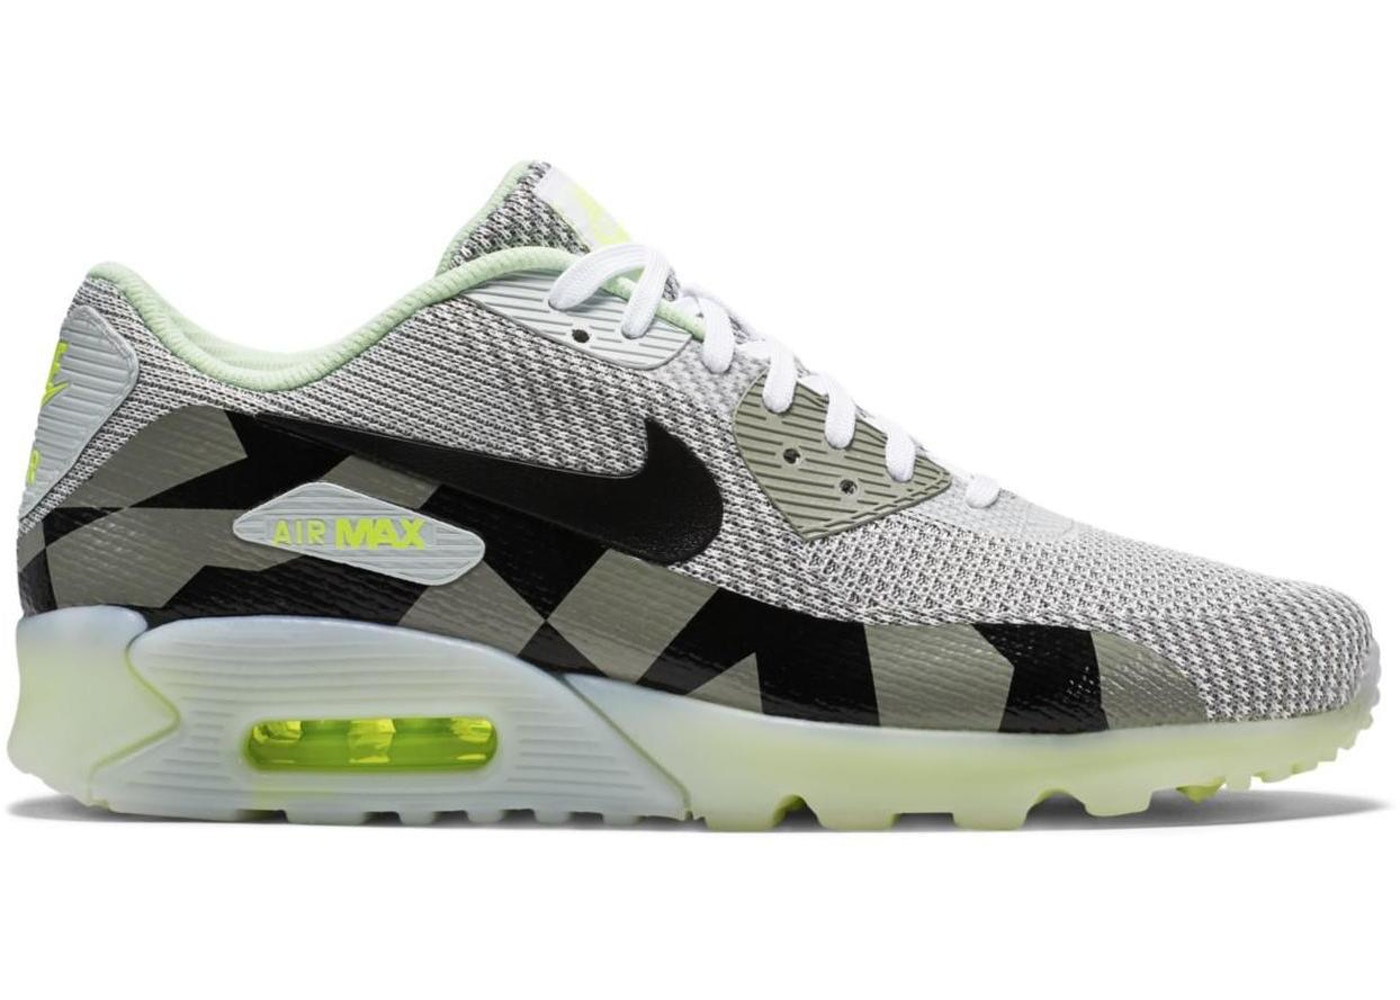 check out 7ff69 c2080 Air Max 90 Ice Jacquard - 744553-100